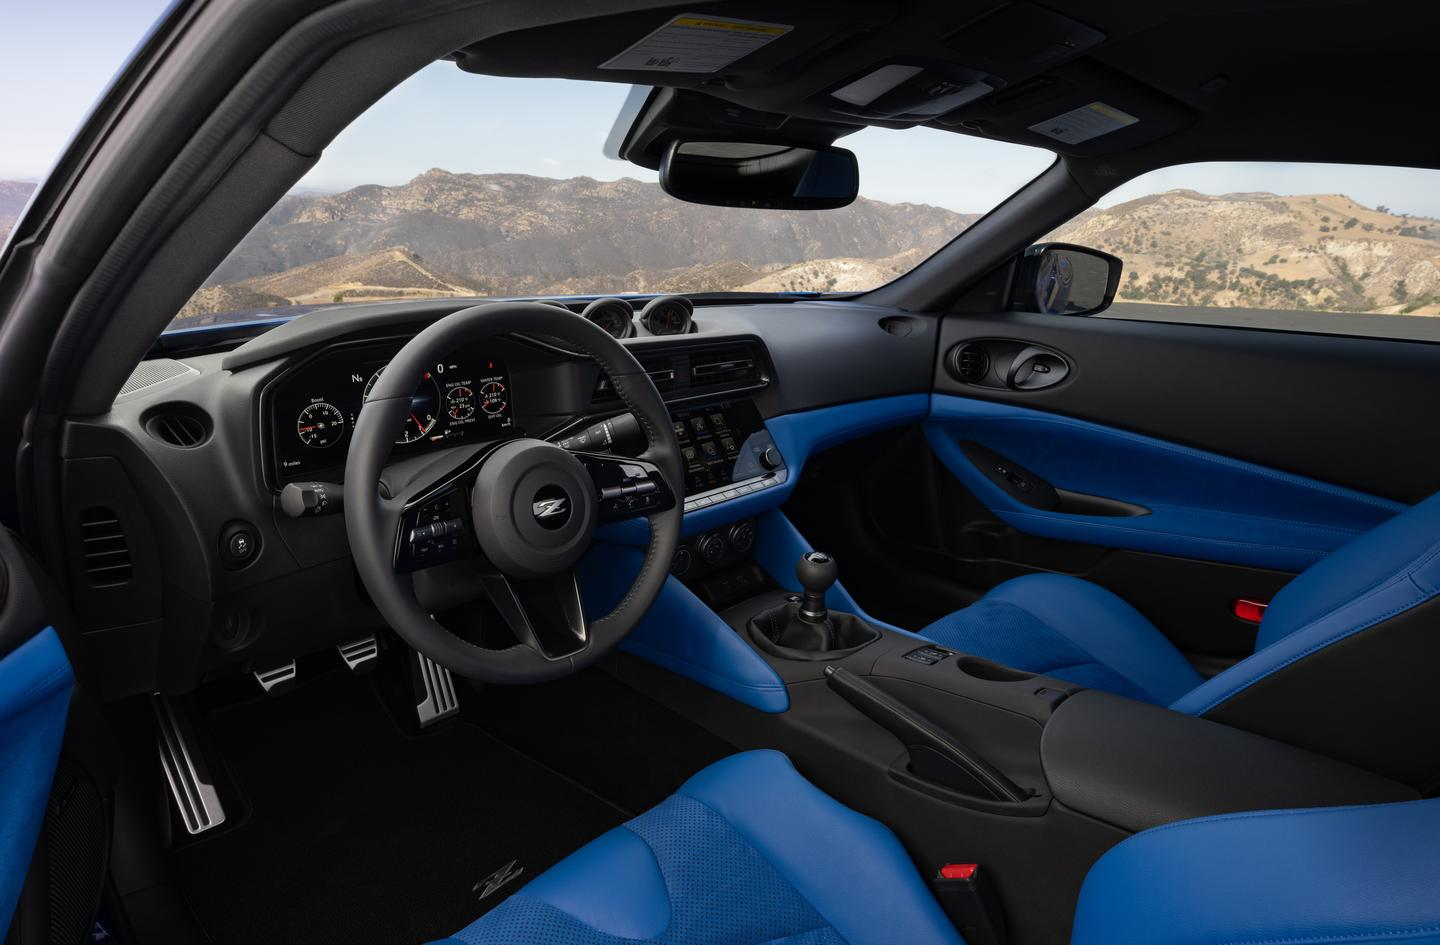 The interior of the 2023 Nissan Z includes three interior accent color choices, including this blue